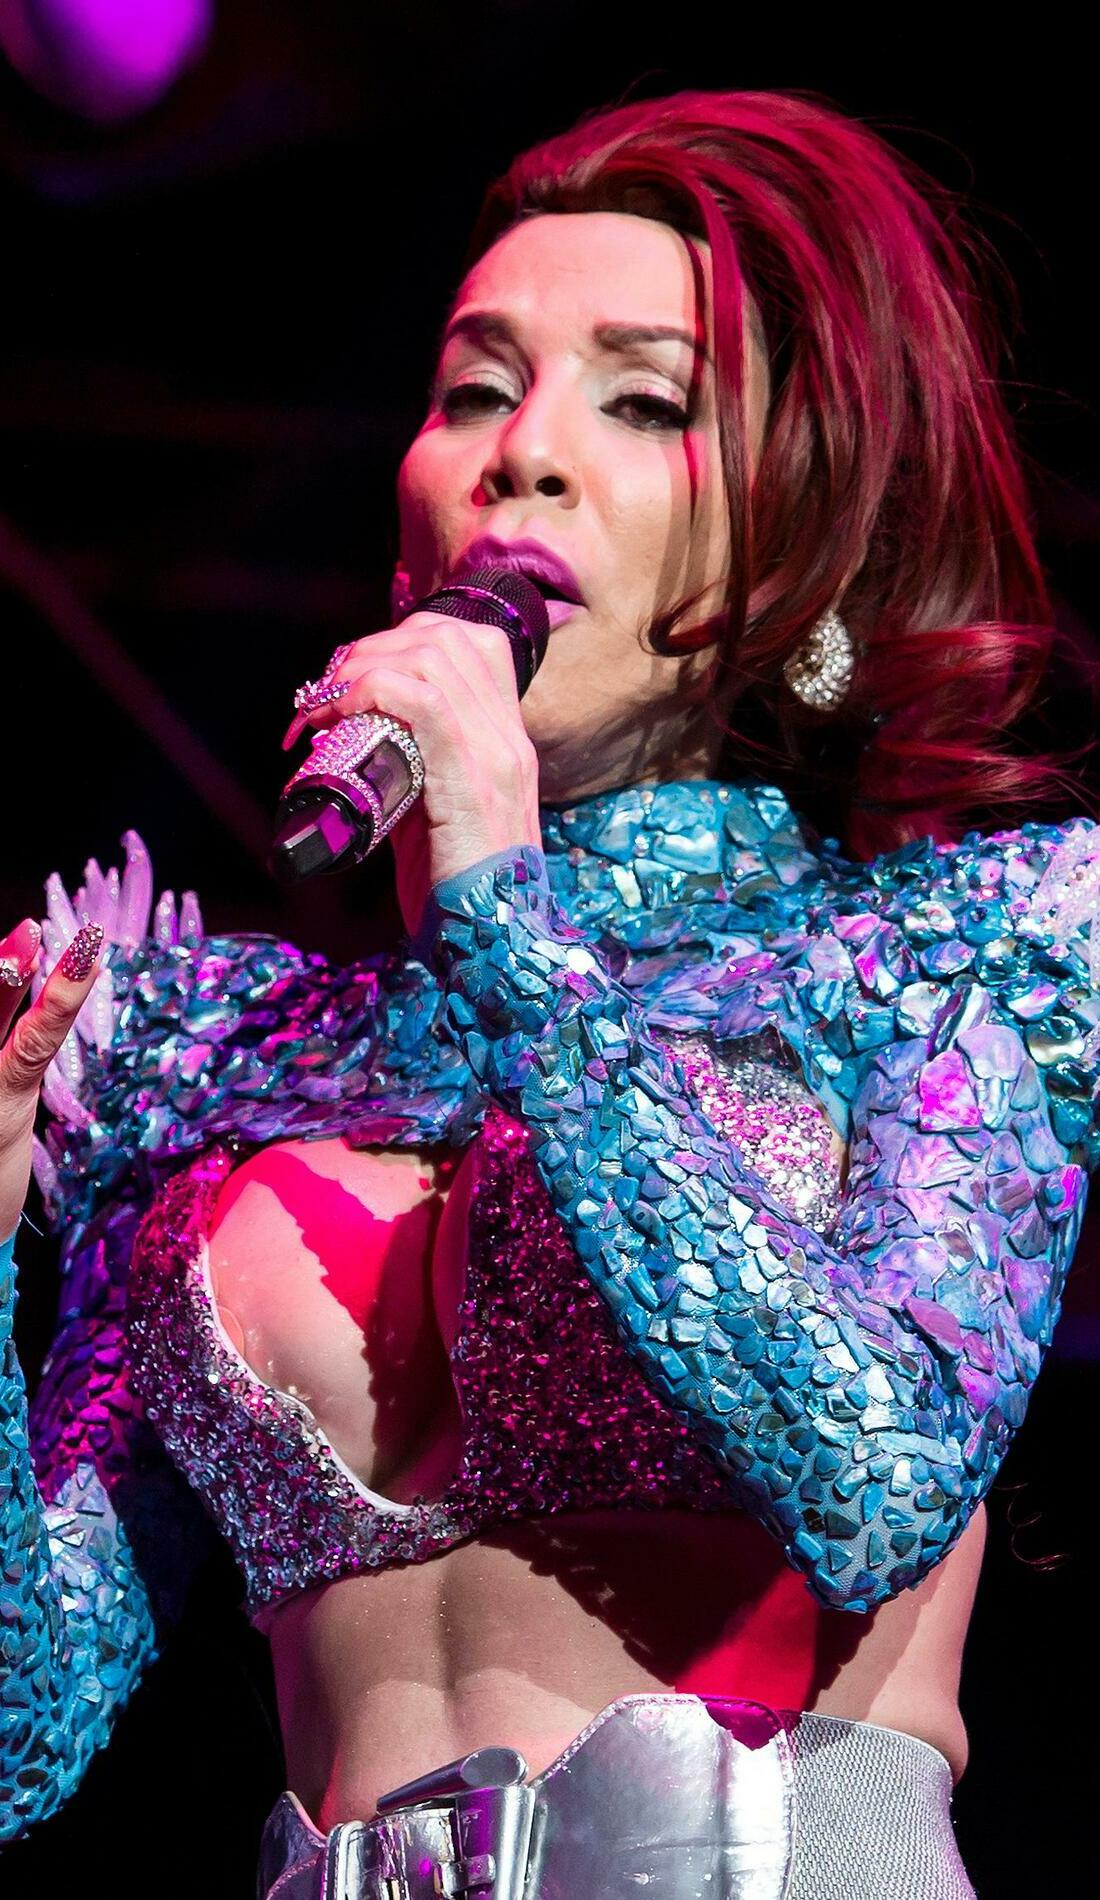 A Ivy Queen live event